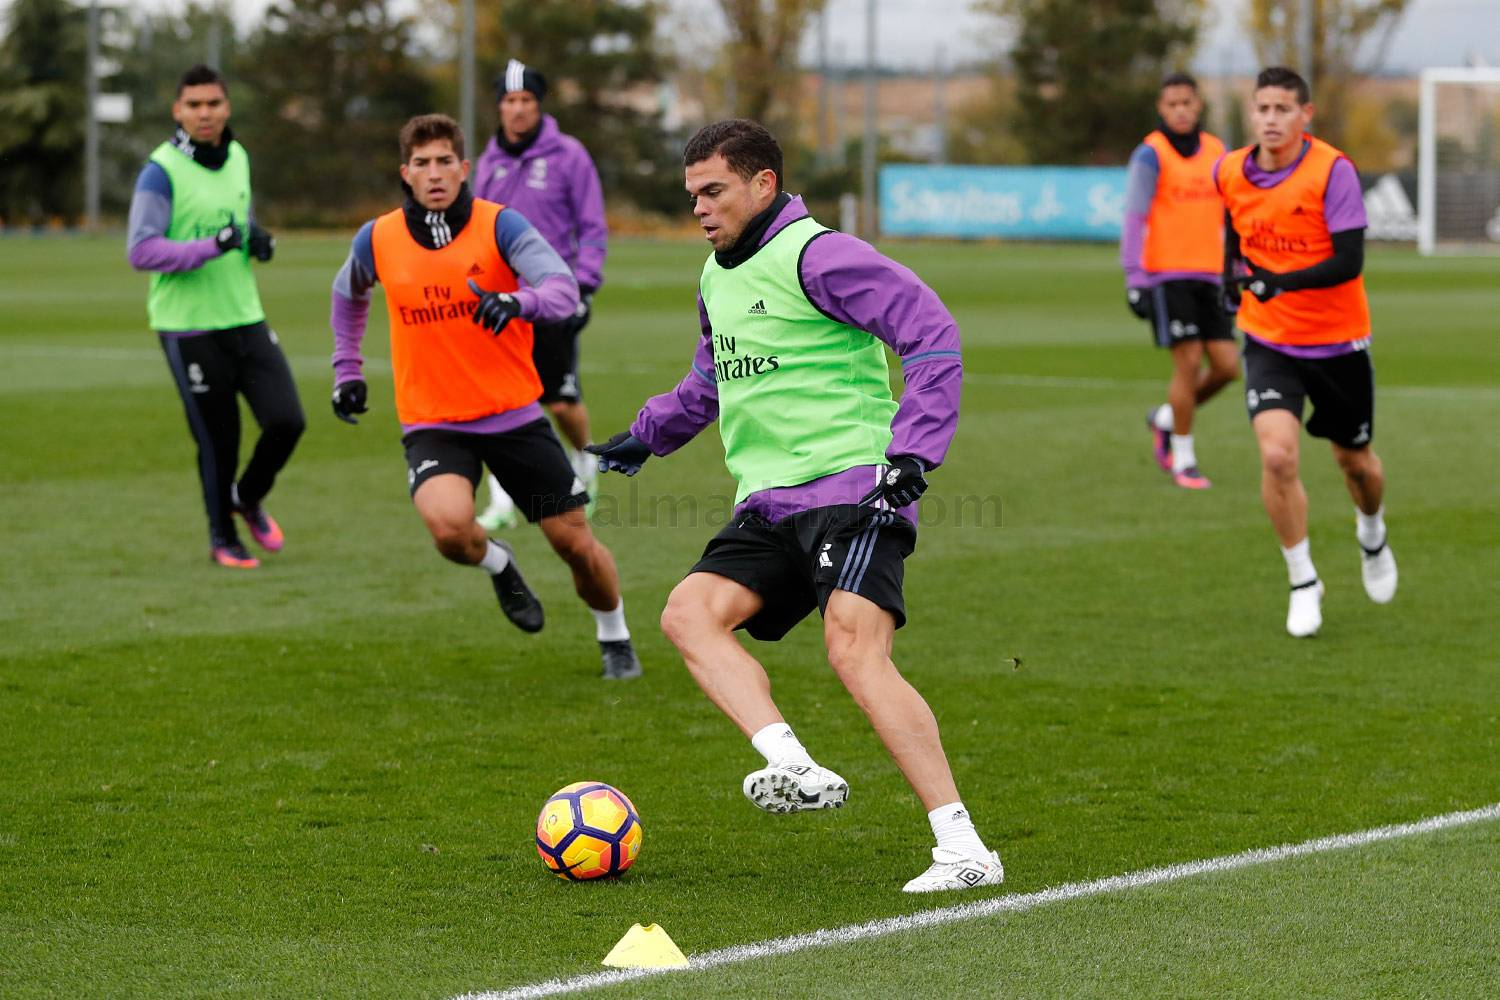 Real Madrid - Entrenamiento del Real Madrid - 23-11-2016